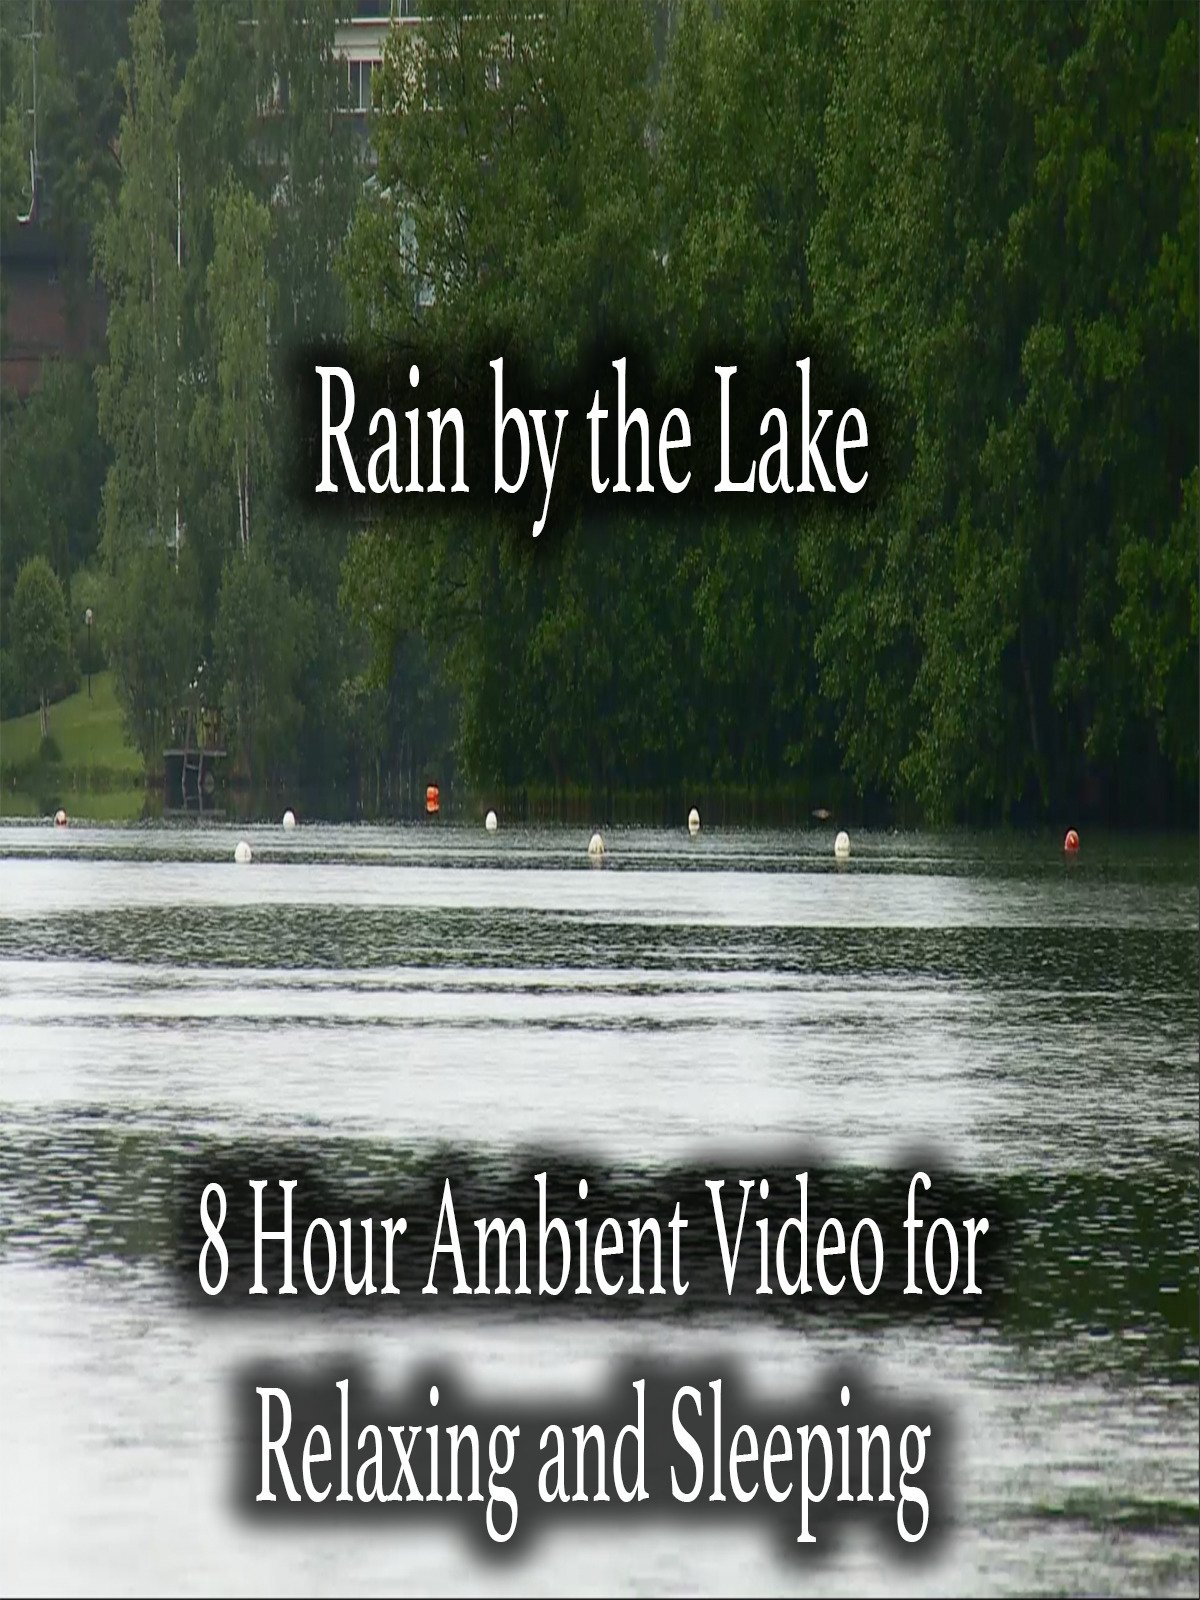 Rain by the Lake 8 Hour Ambient Video for Relaxing and Sleeping